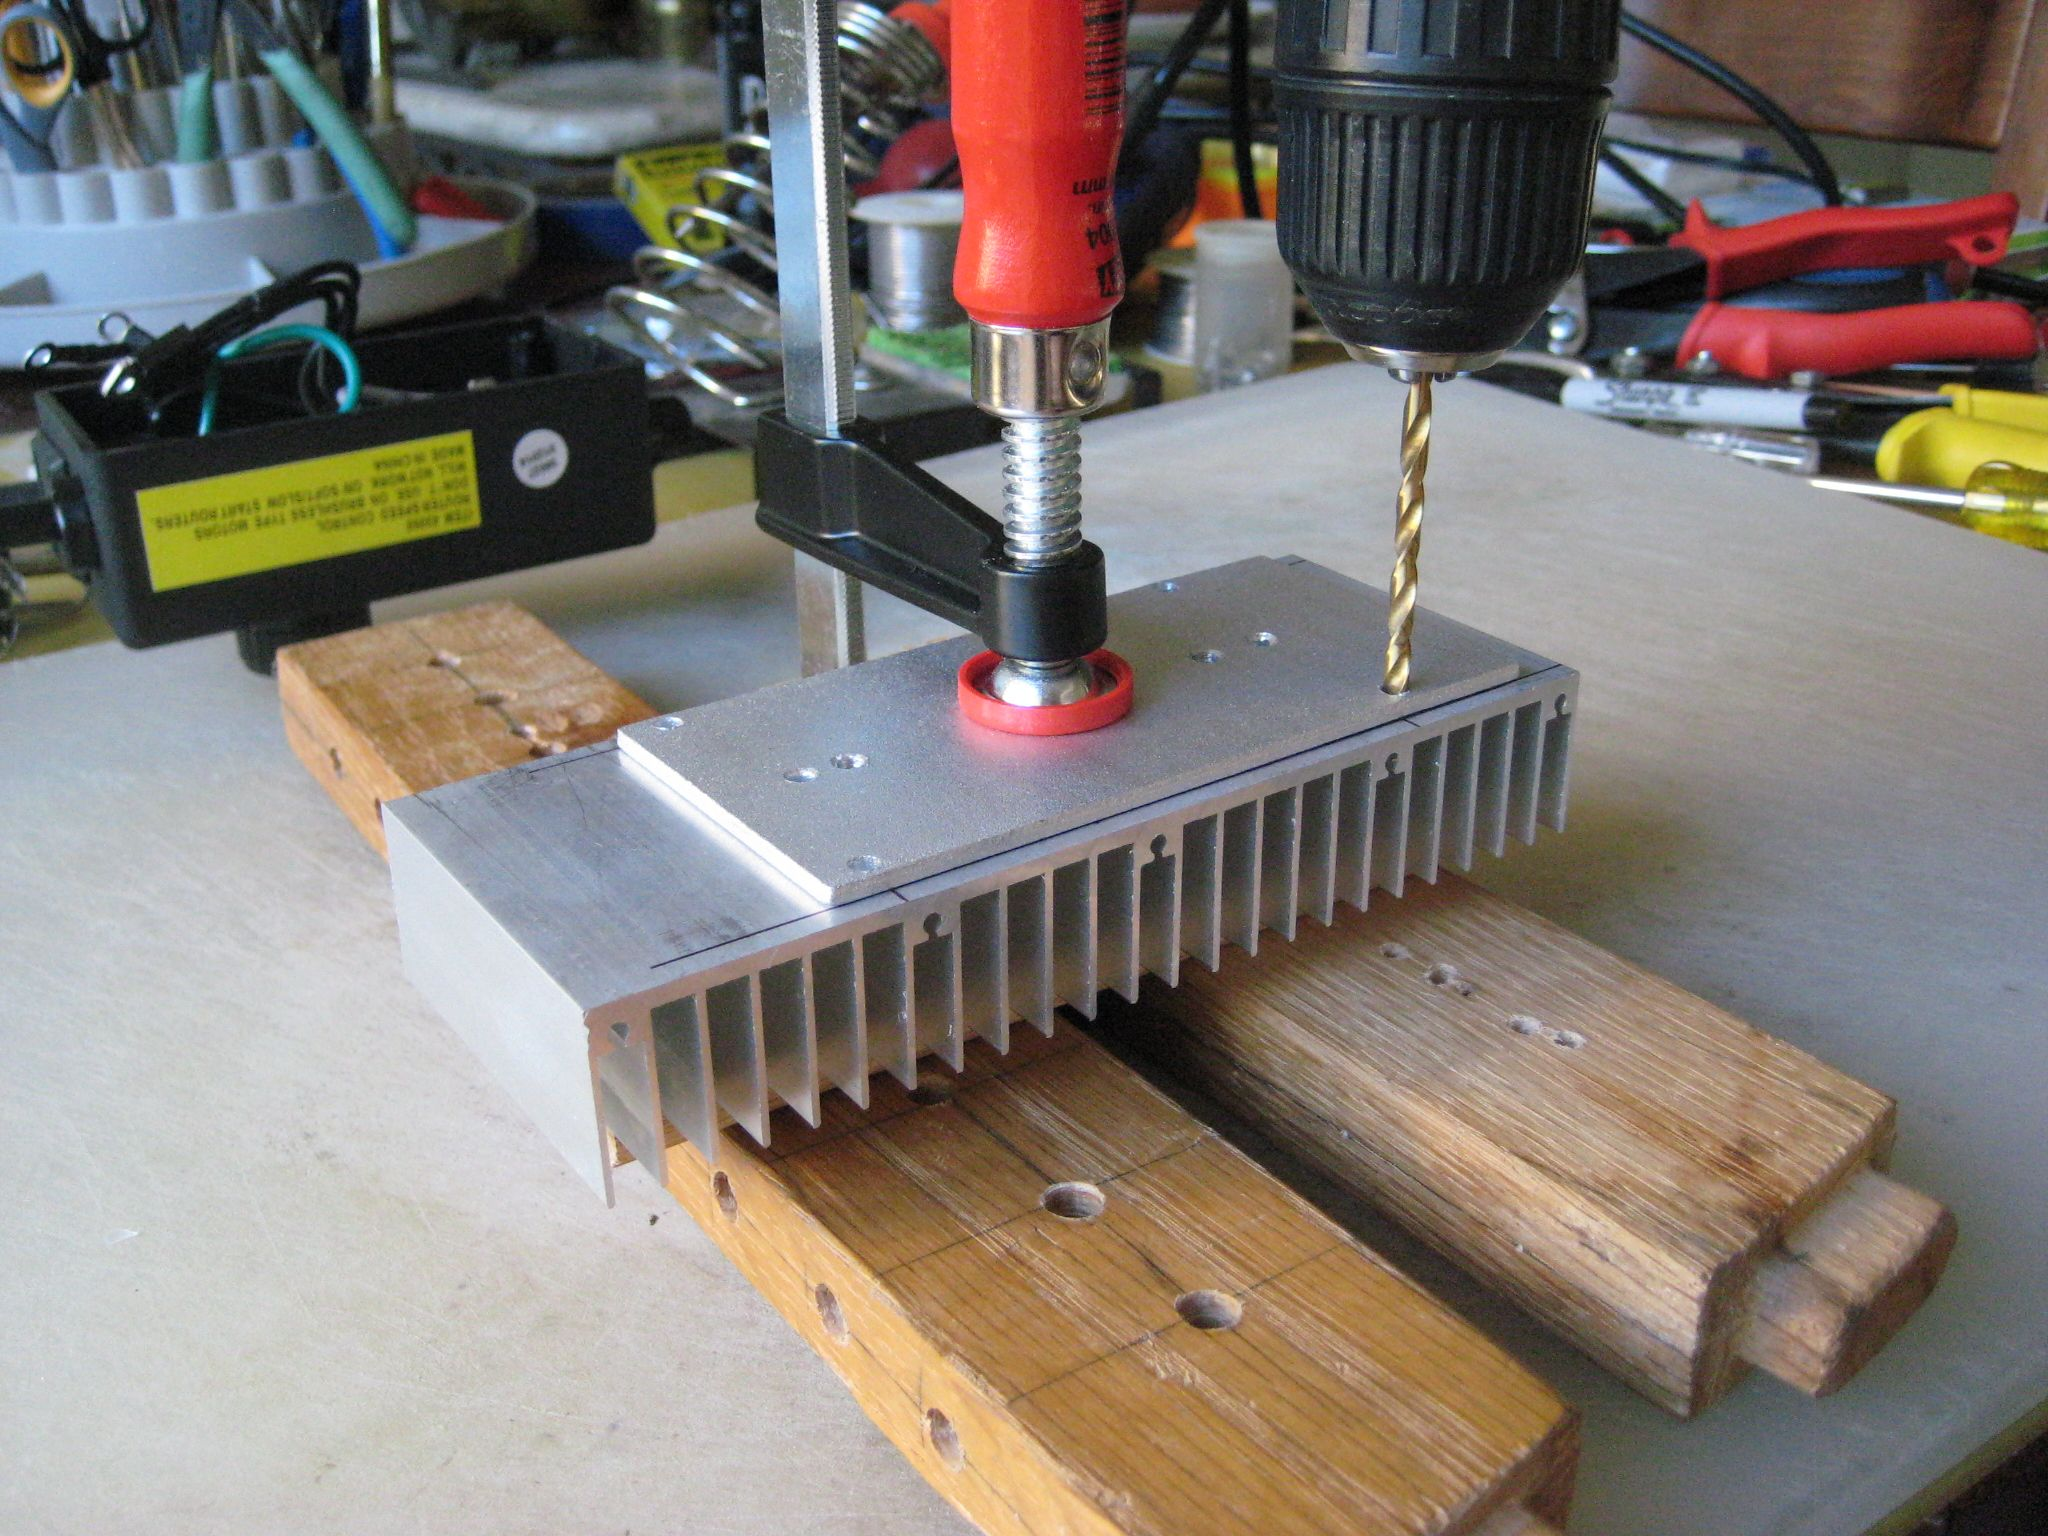 Harbor Freight Router Speed Control Mod